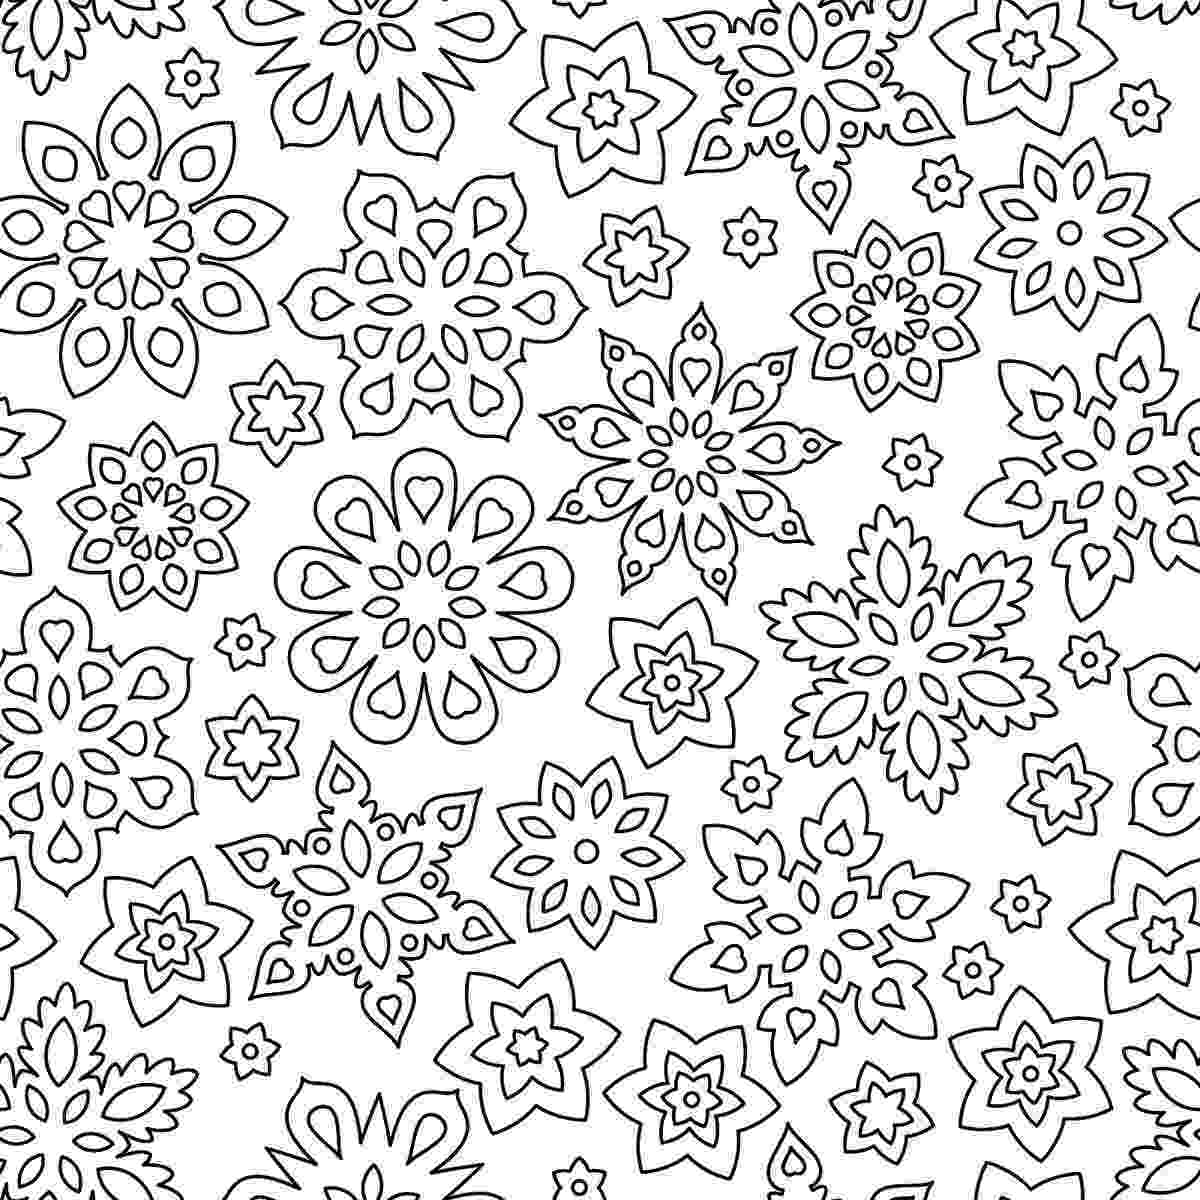 winter printable coloring pages free free printable winter coloring pages winter coloring winter coloring free pages printable